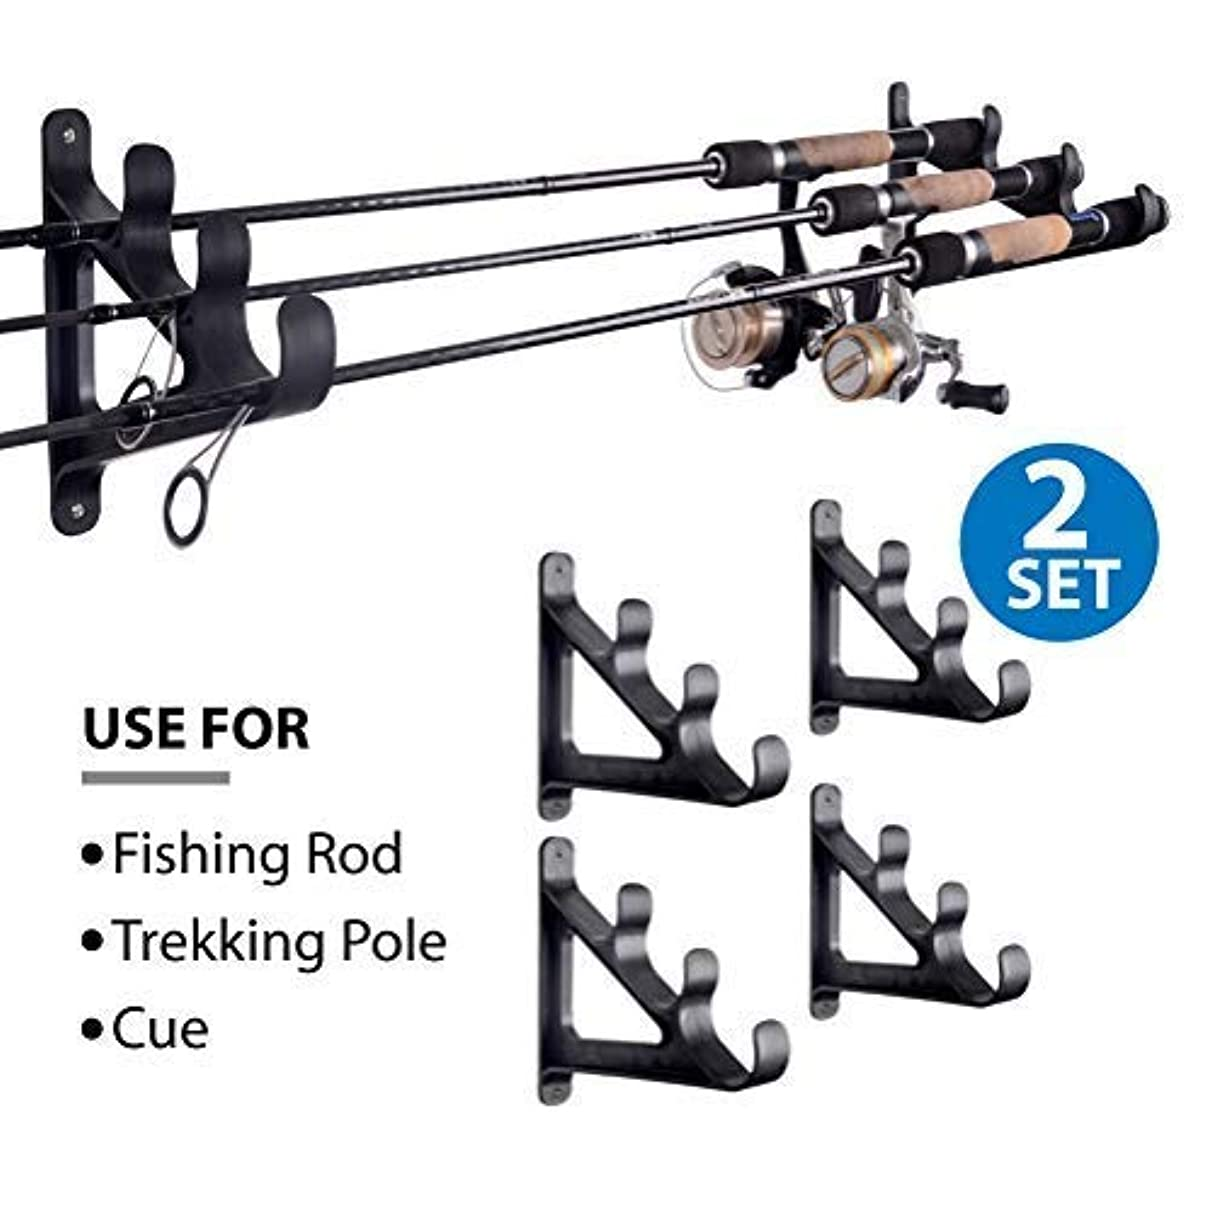 CAIKEI Horizontal Rod Rack for Fishing Rod Wall Rack Storage-Ultra Sturdy Strong Weatherproof Holds 3 Rods- Space Saving for Fishing Rods,Hiking Poles, Ski Poles, Hockey Sticks and Cue,2 Set